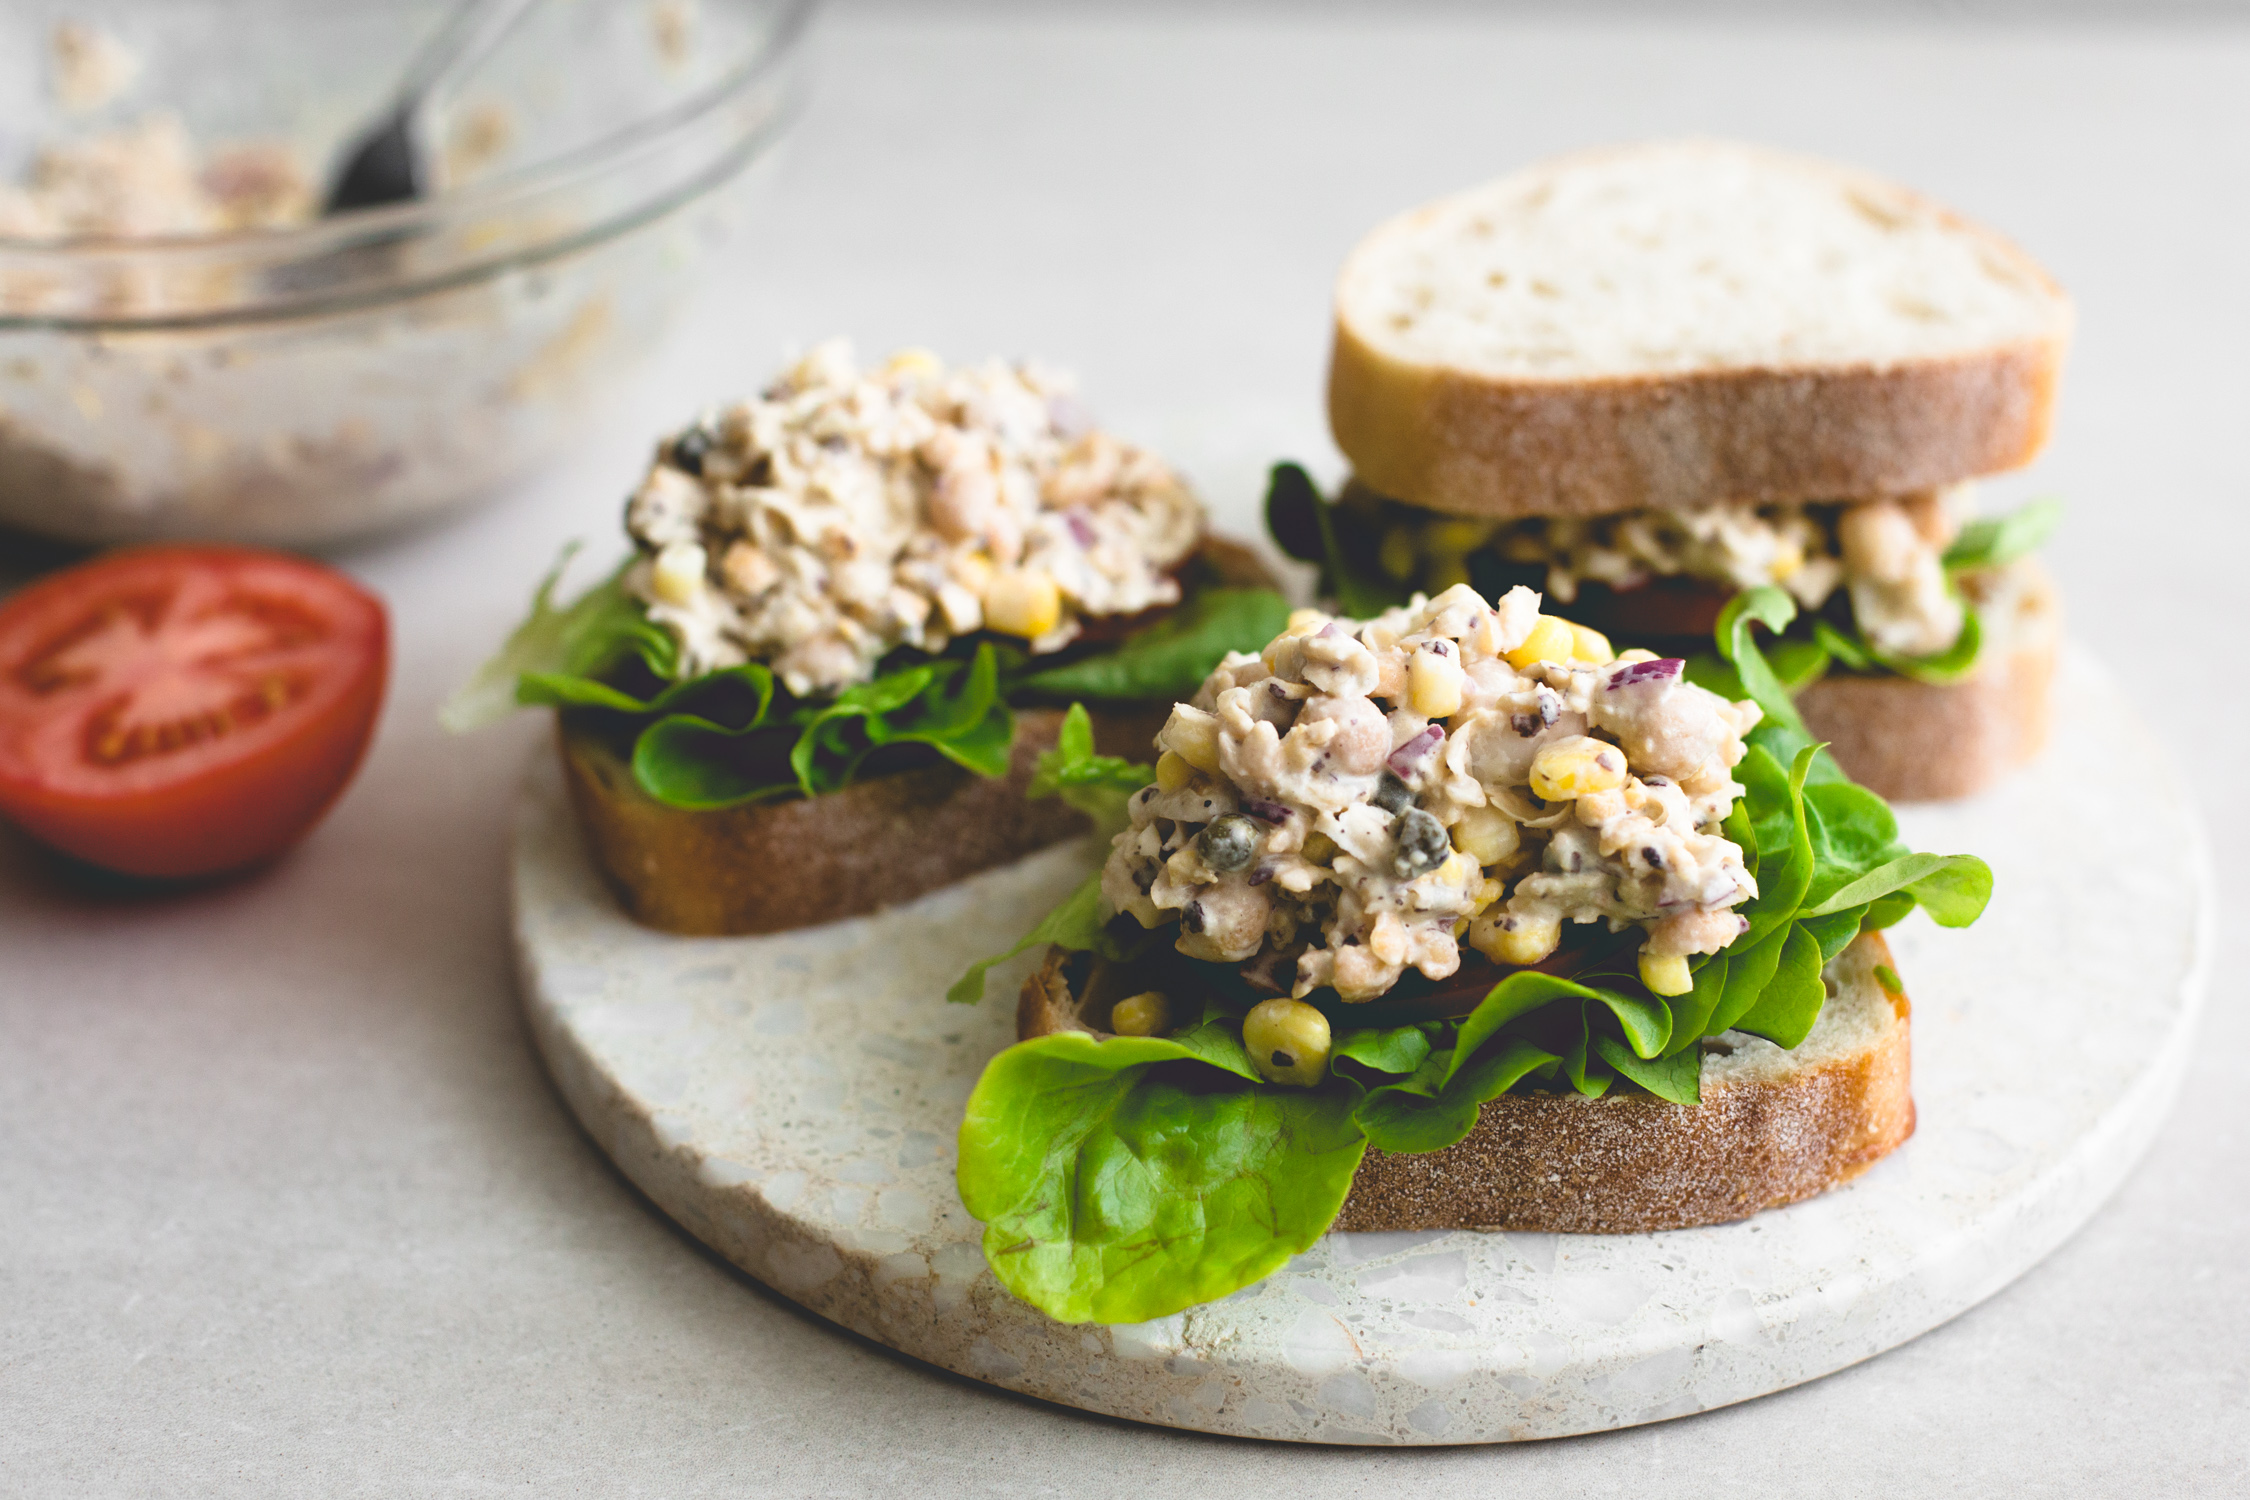 The Best Vegan Tuna Salad ever! Made with Chickpeas, Vegan Mayo, Dill, Capers, Onion and a secret ingredient! Ready in under 10 minutes. #tunasalad #plantbased #chickpeas #sandwich #healthy #vegetarian #tunamayo #tunasandwich #fauxtuna